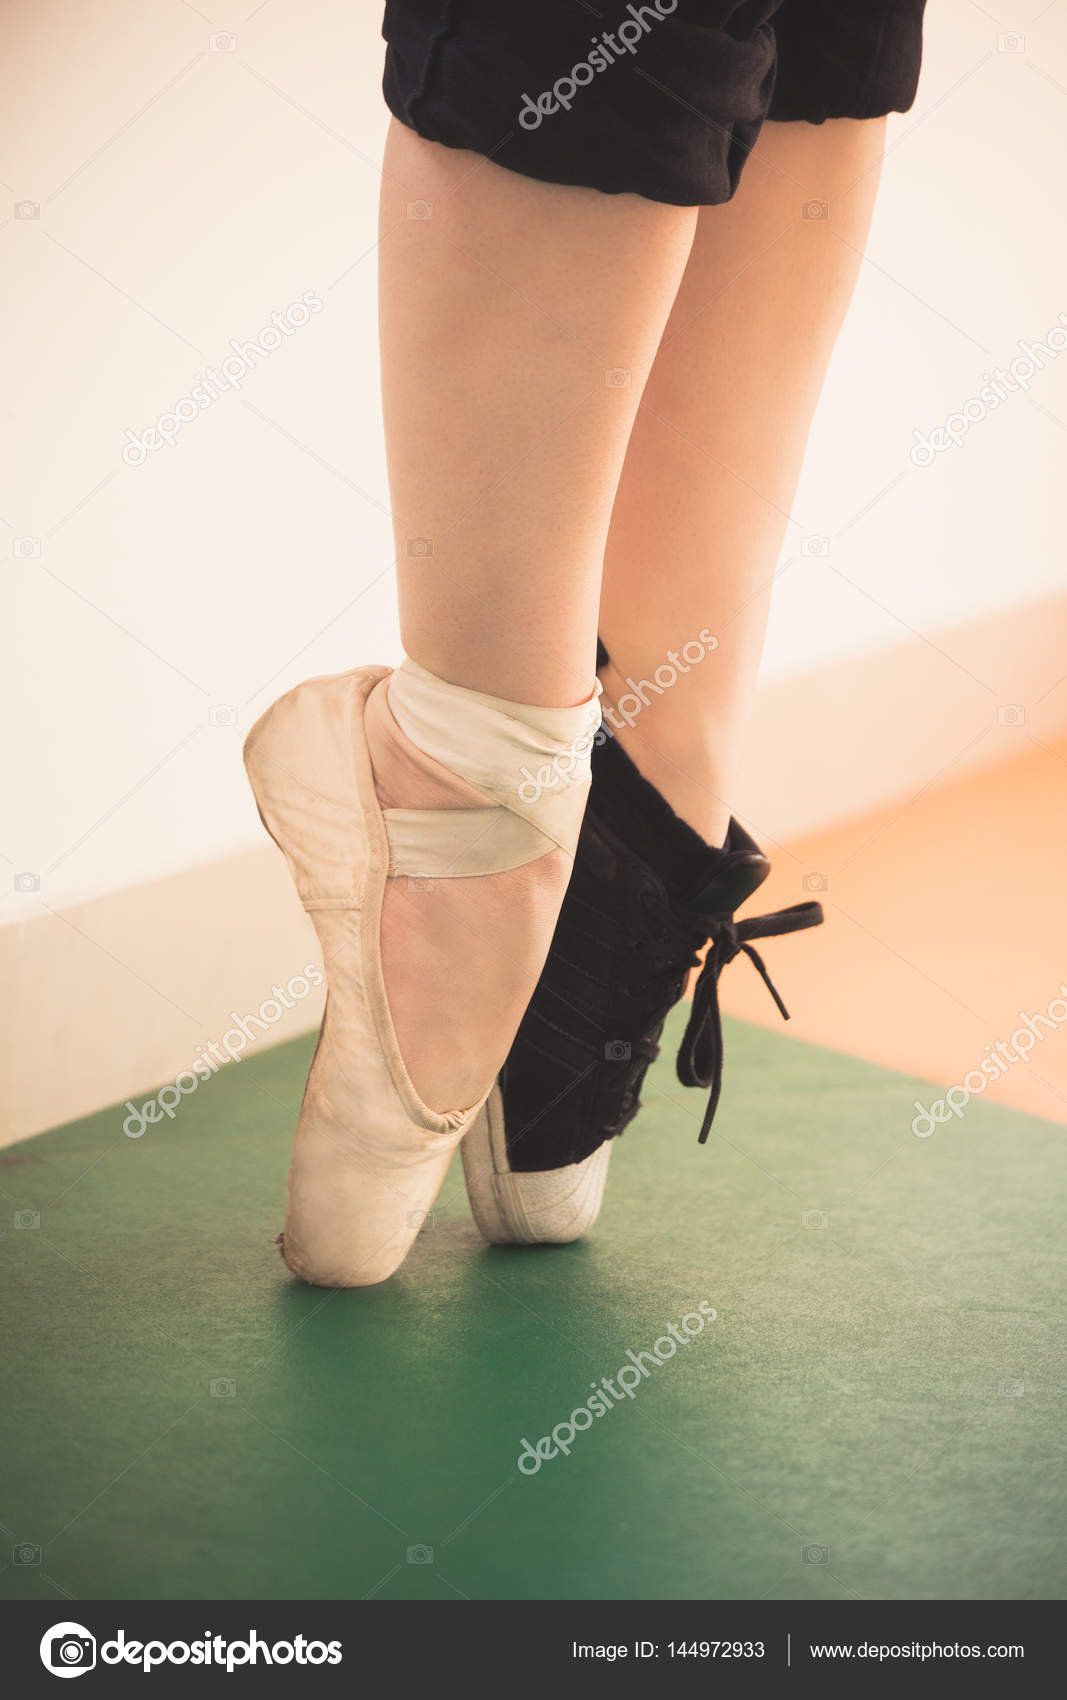 girlfeet Dancer girl feet in sneakers and ballet shoes closeup – Stock Image